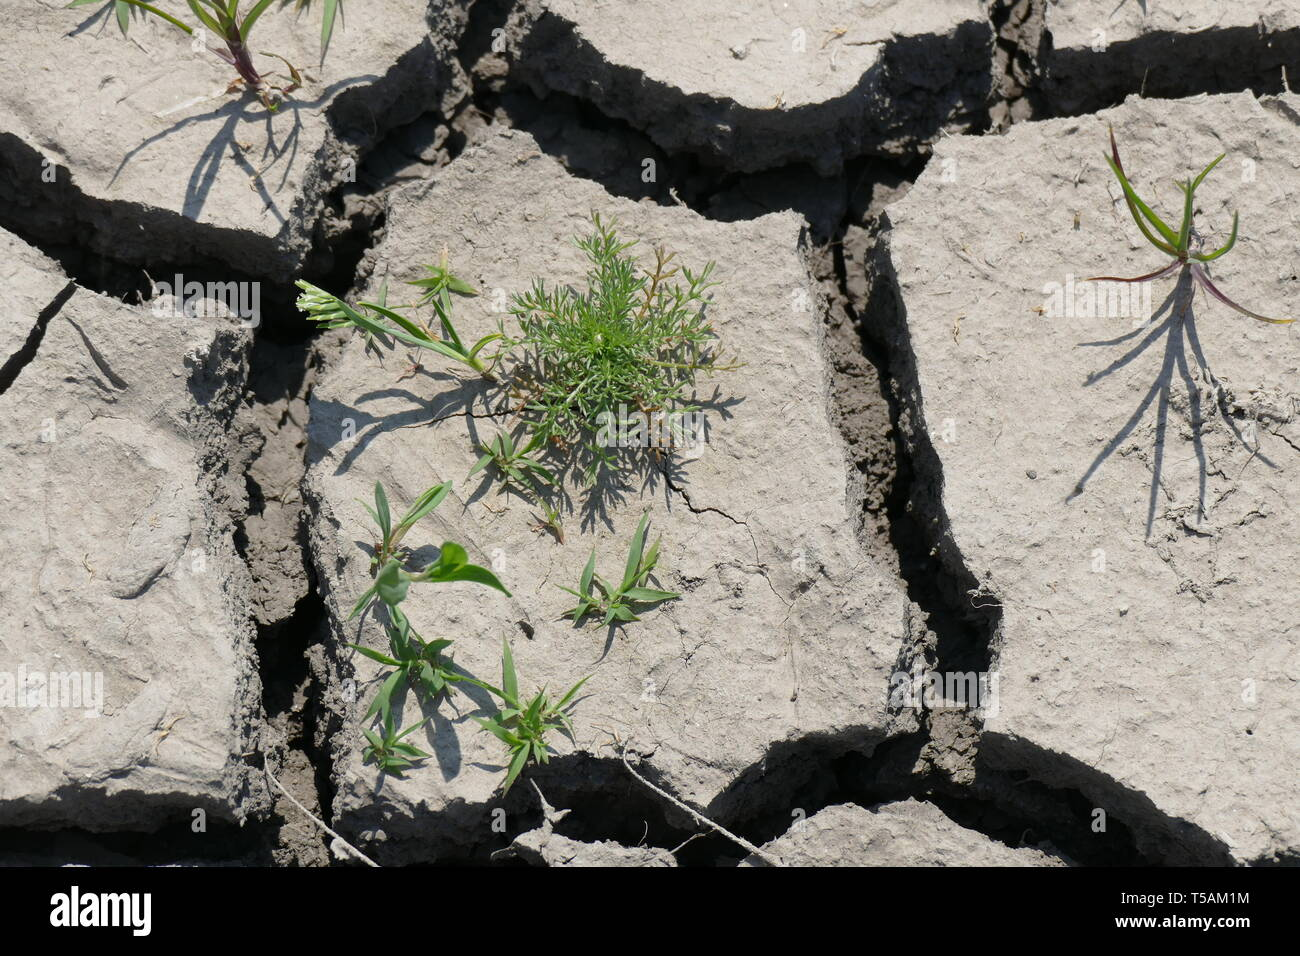 Cracked dry land. Drought, waterlessness. Disaster. Small plants thirst for rain. Stock Photo